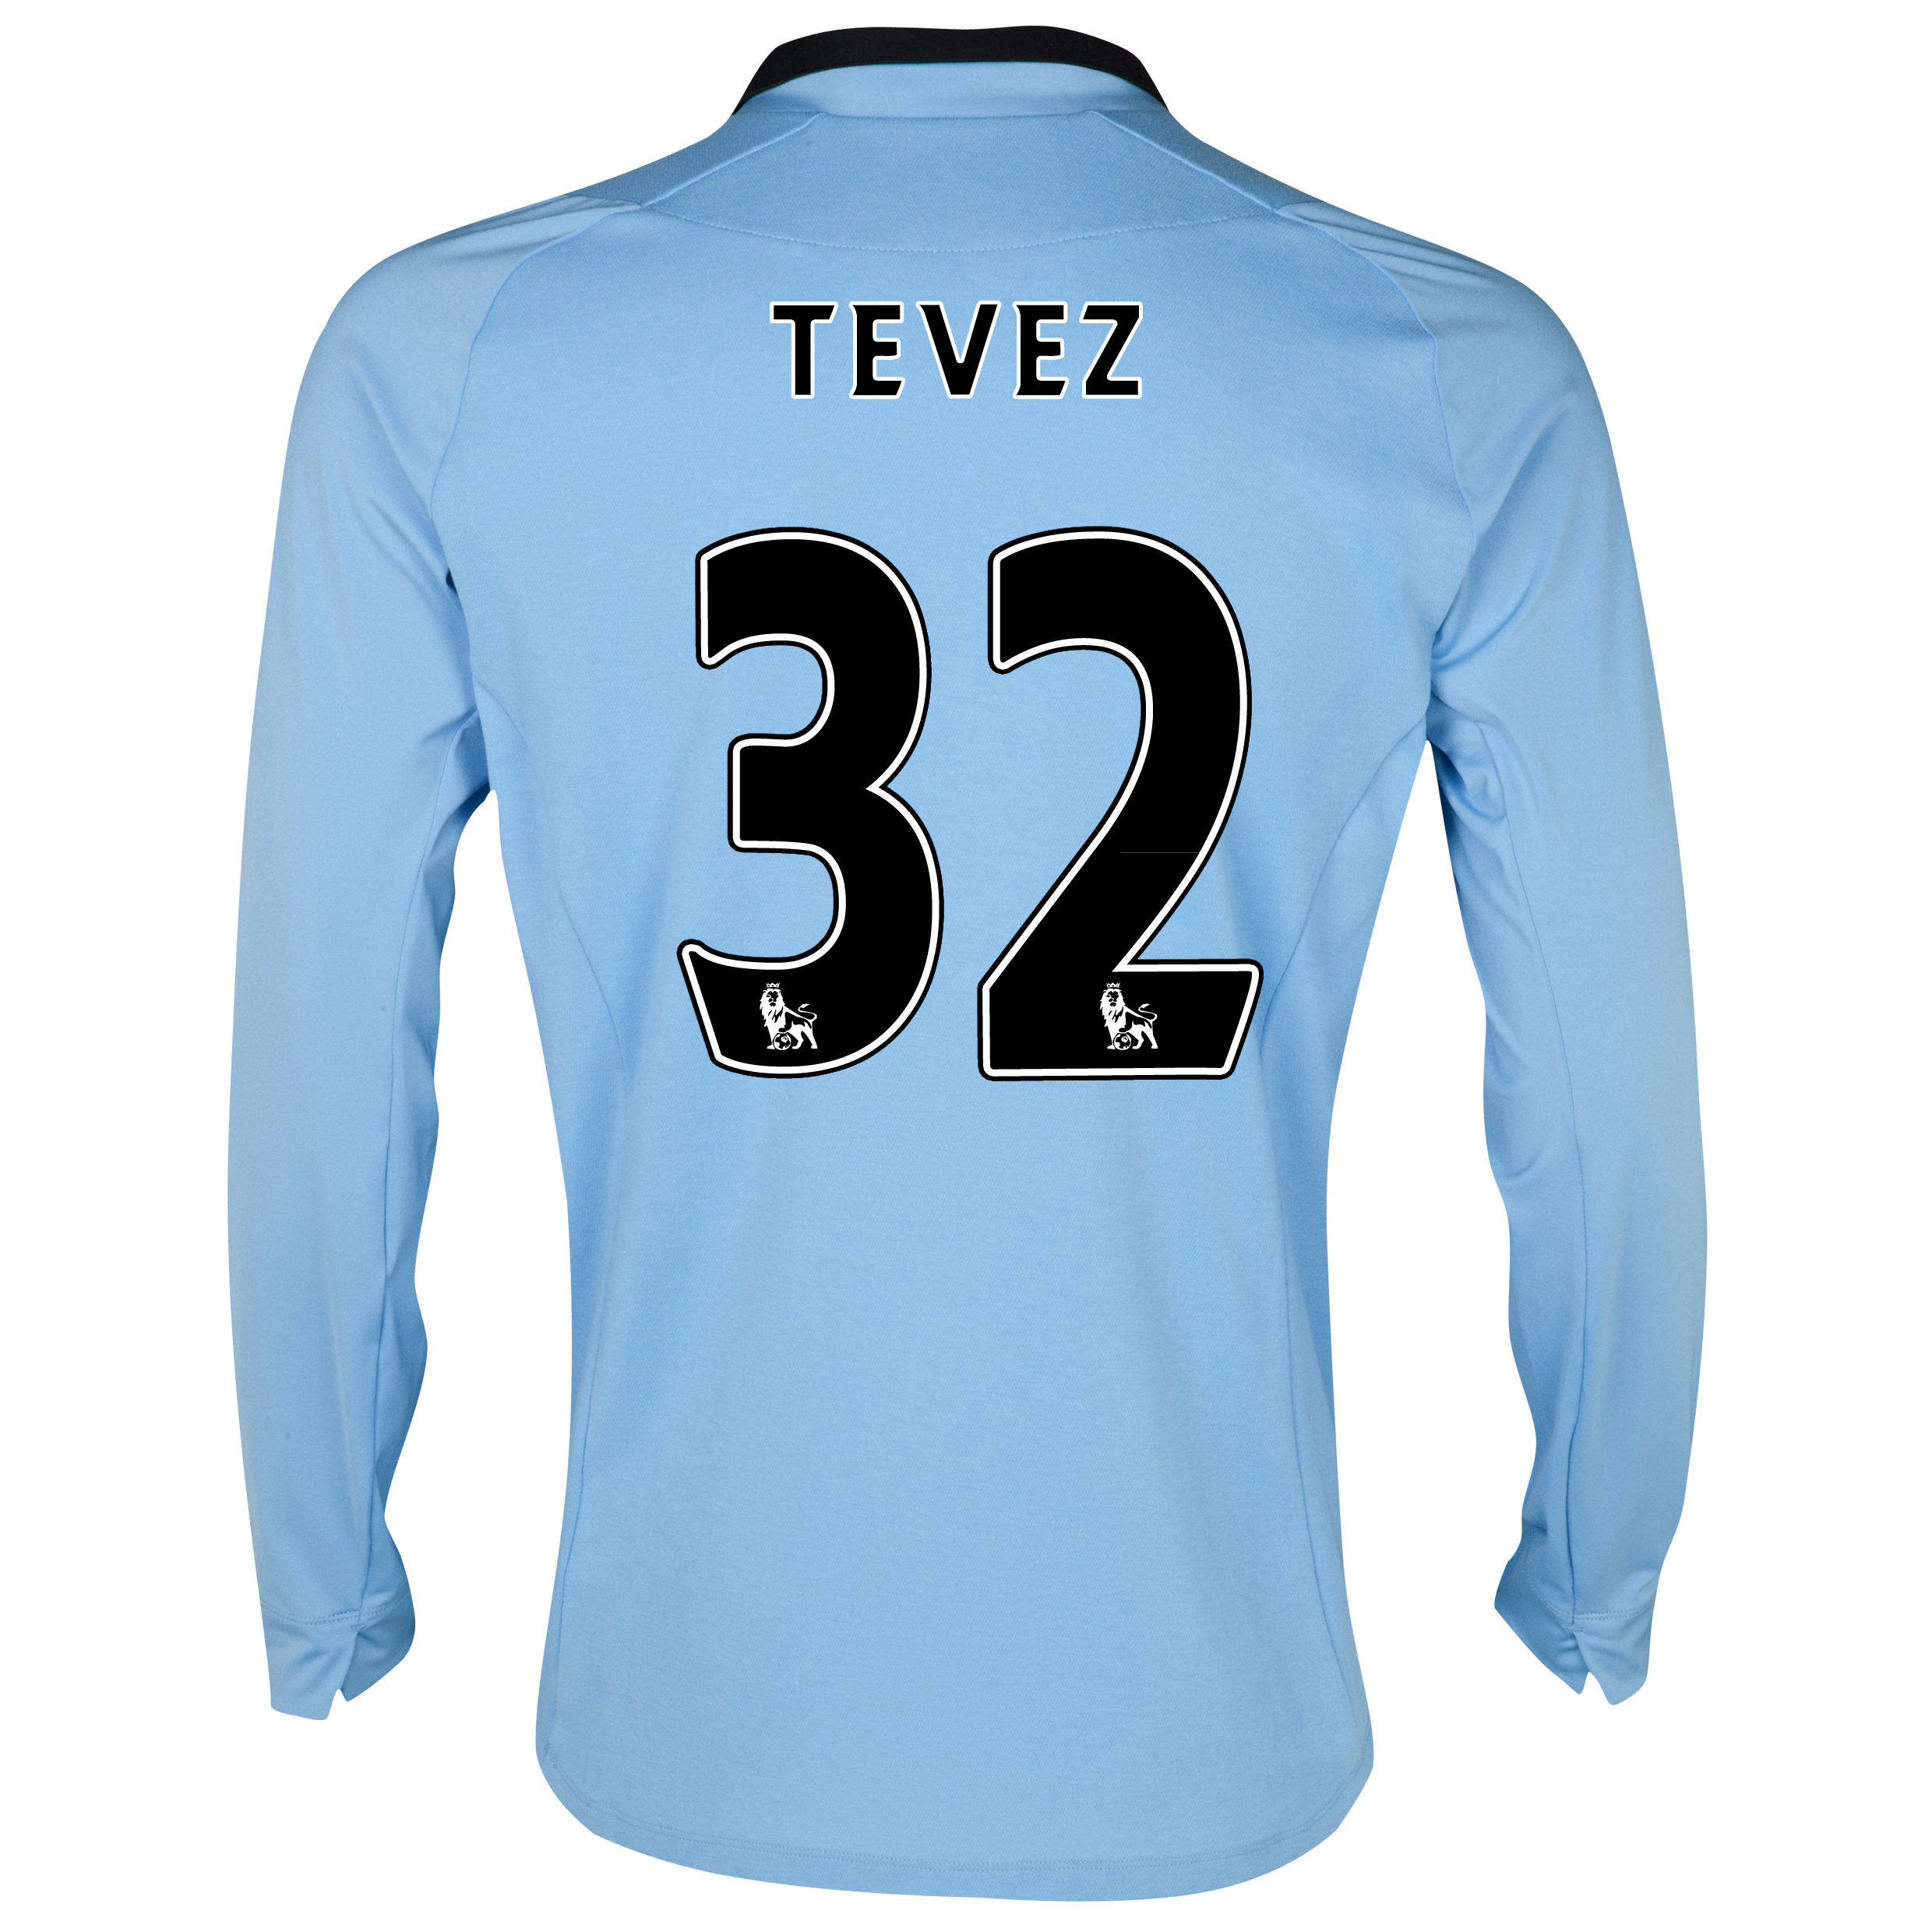 Manchester City Home Shirt 2012/13 - Long Sleeved